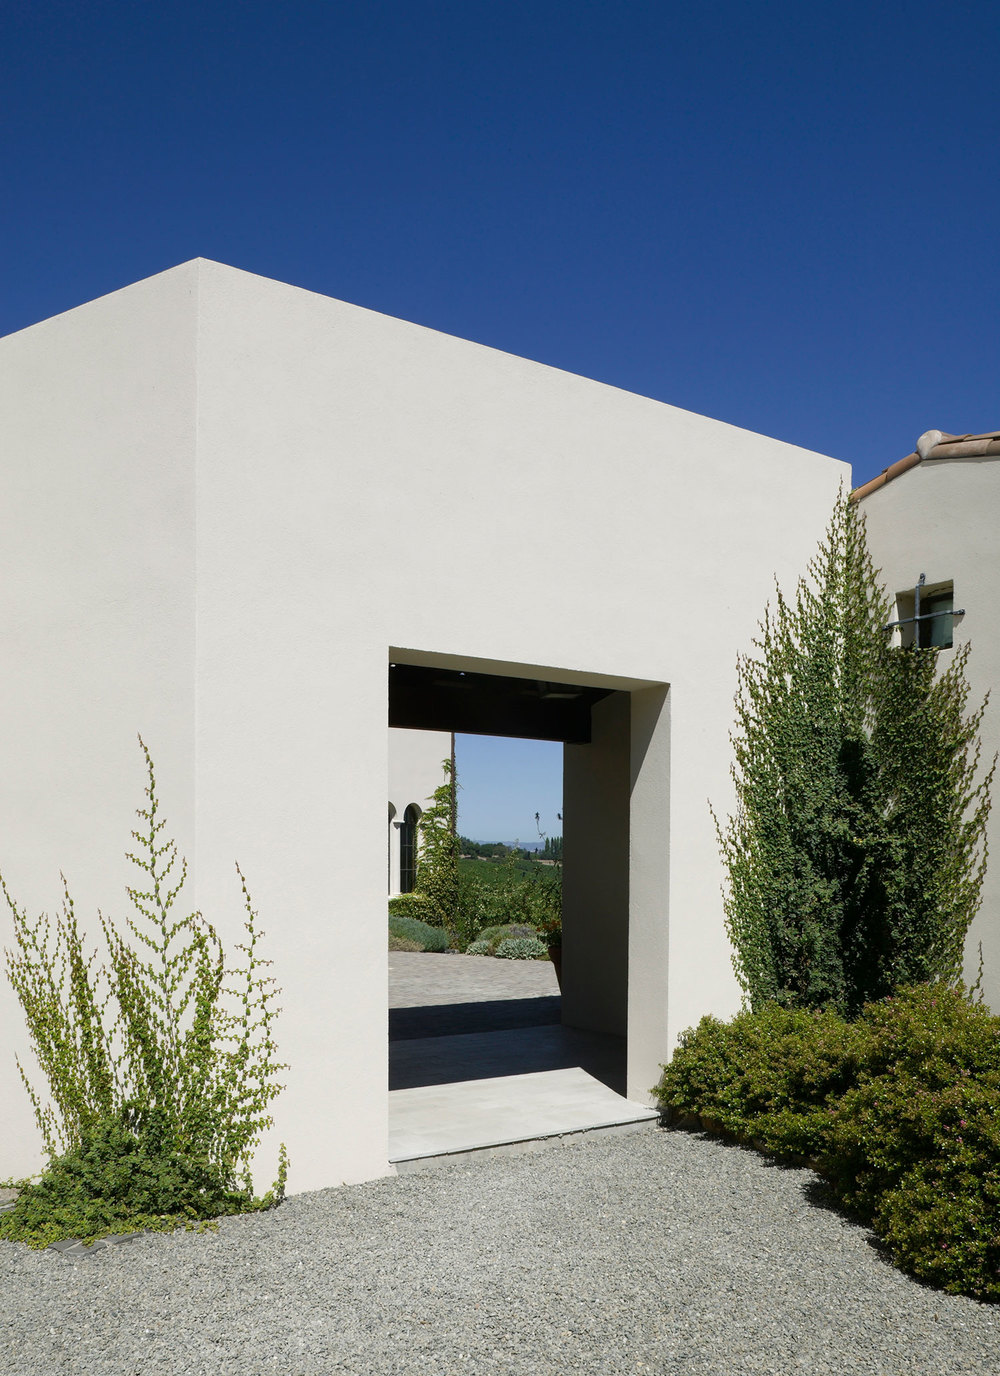 Location: Sonoma County, California  Project Type: New Residence